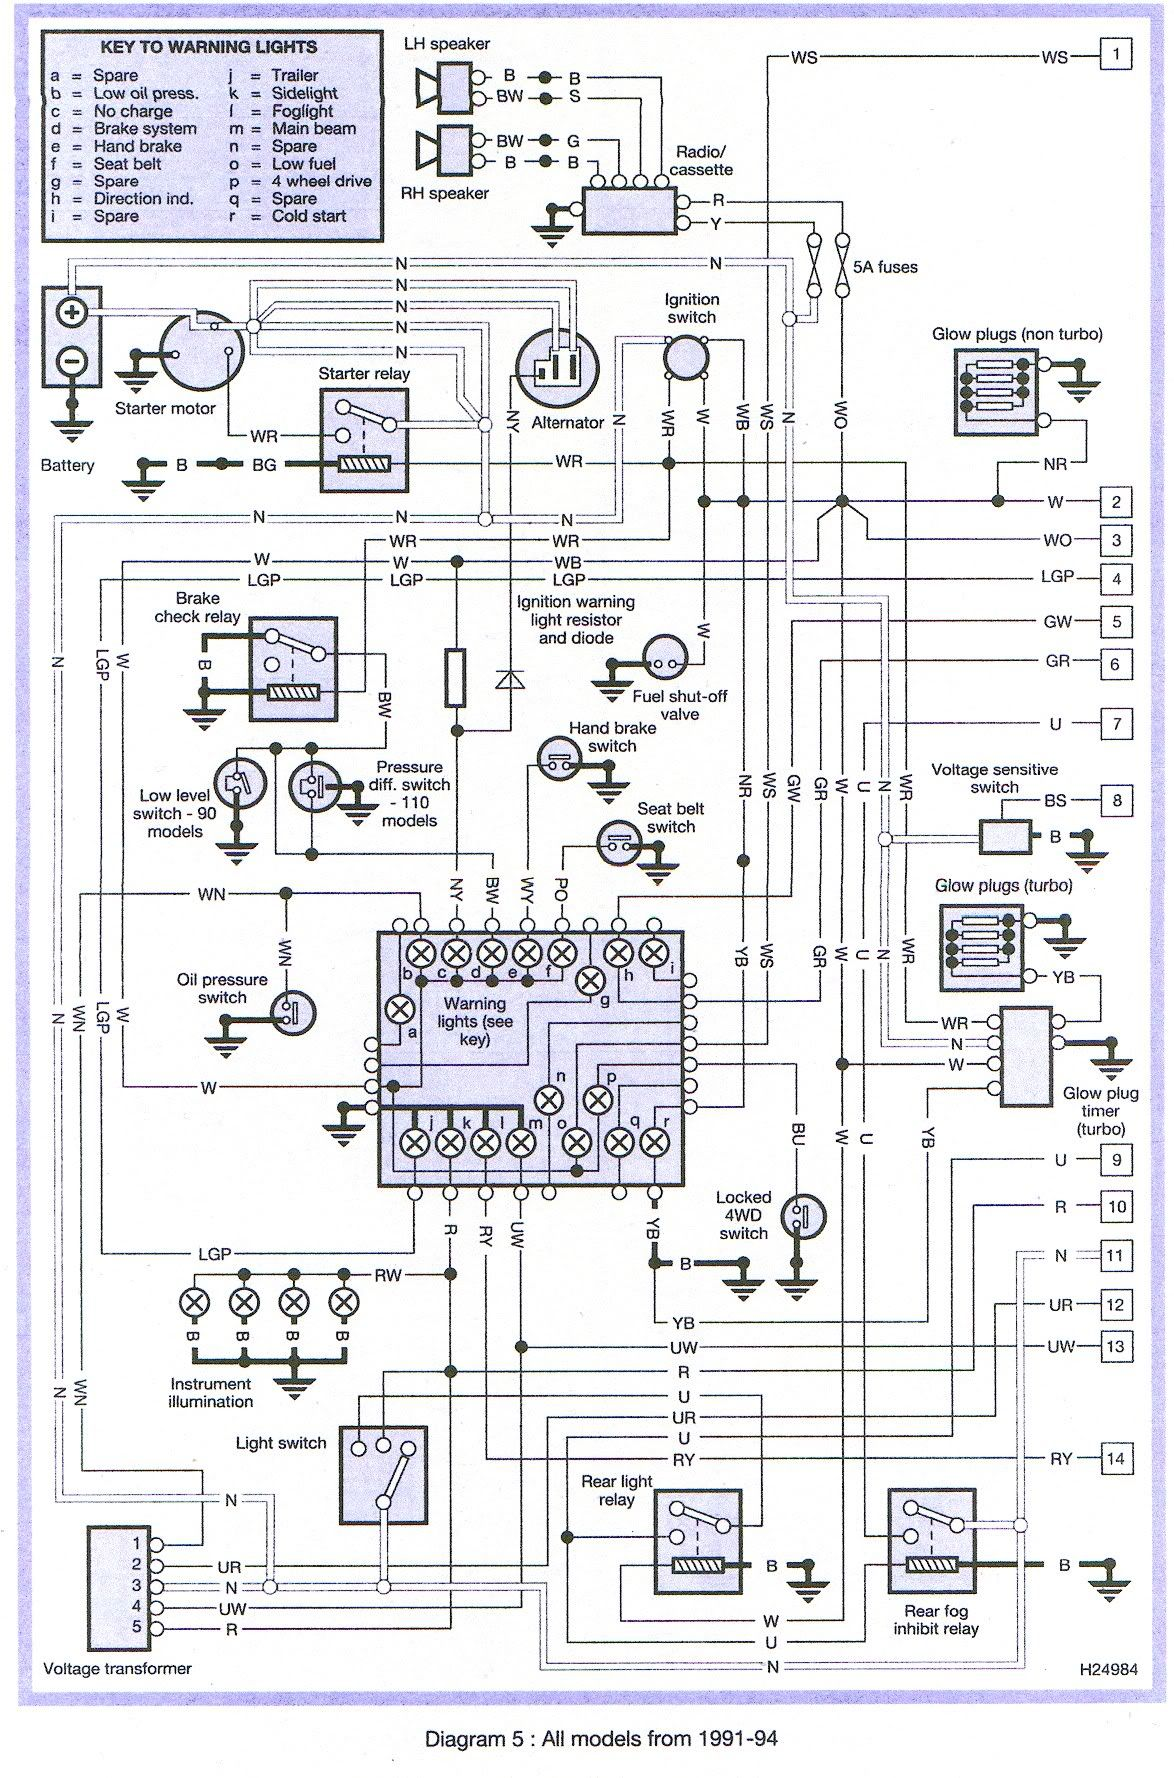 07629544bfff38ad2881b2c21312c6e6 land rover discovery wiring diagram manual repair with engine 2006 land rover lr3 wiring diagram at n-0.co